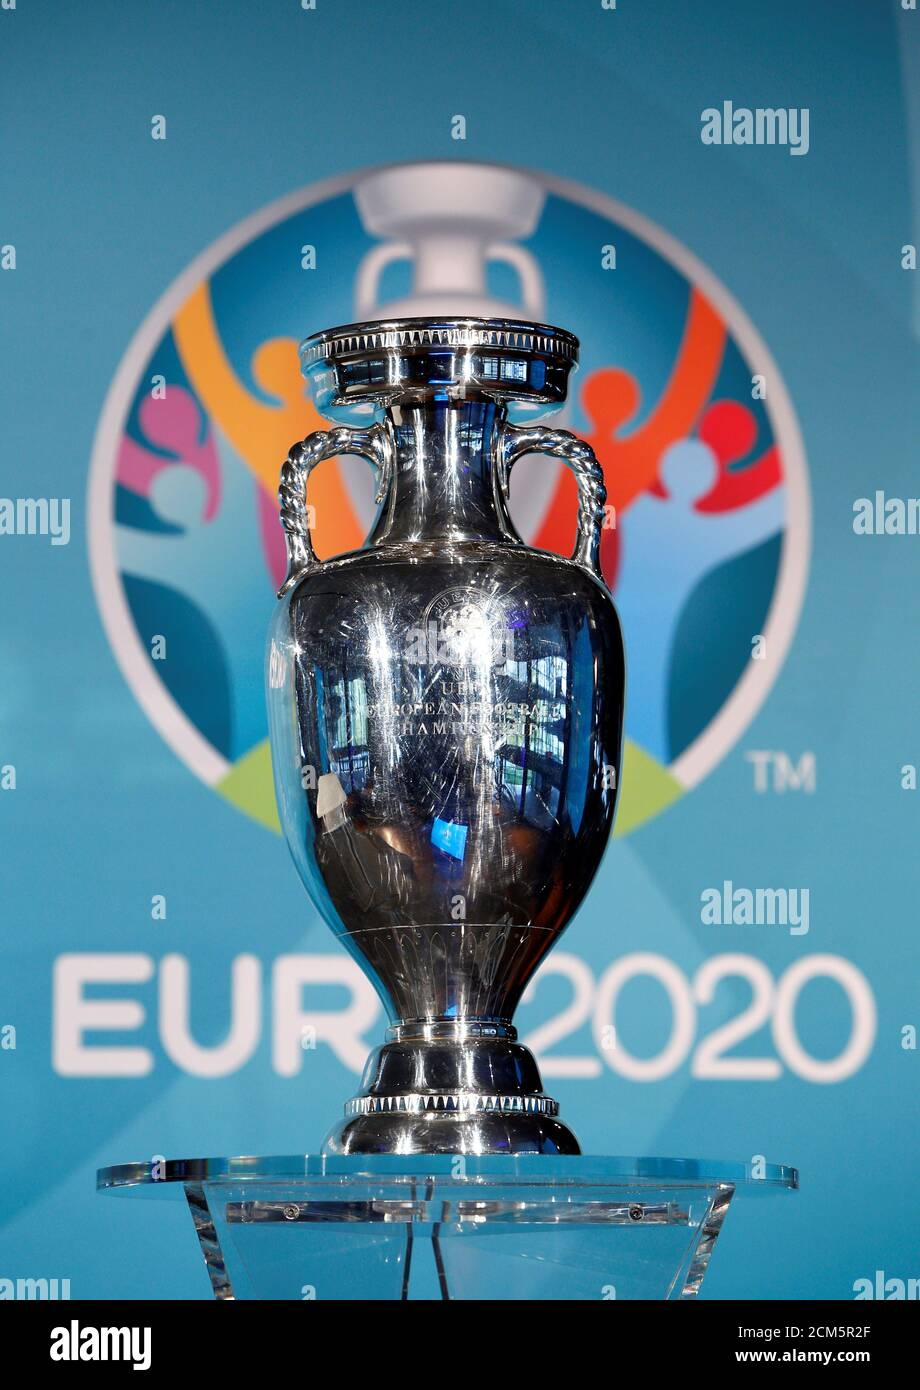 Football Soccer Uefa Euro 2020 Munich Logo Launch Olympia Park Munich Germany 27 10 16 The Trophy Is Seen During The Logo Launch Reuters Michaela Rehle Stock Photo Alamy